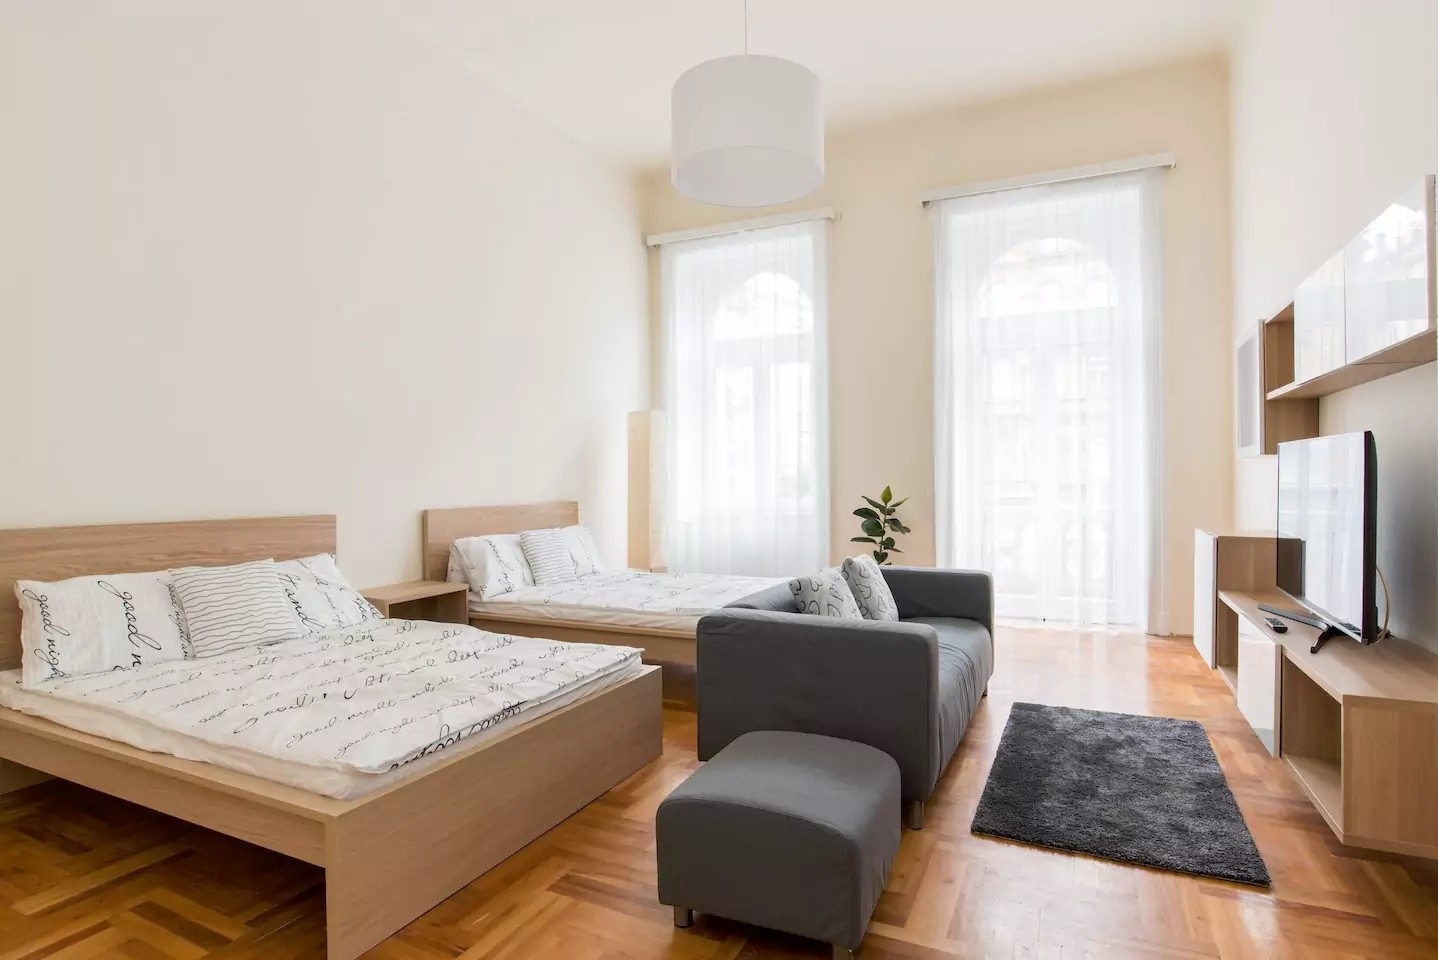 Spacious 3 bedroom 2 bathroom apartment for 6-8 people in ...